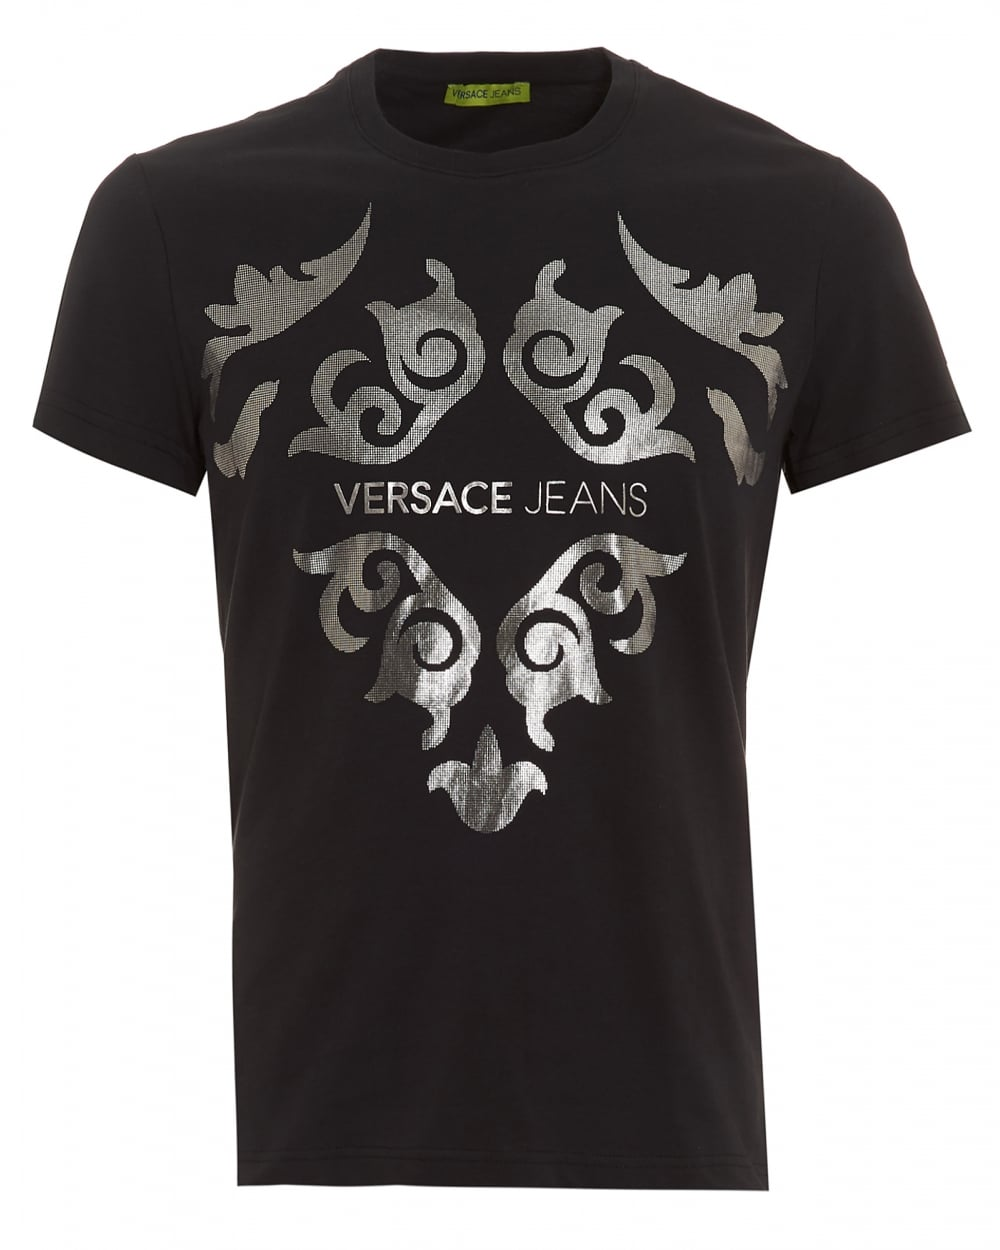 Men's T-shirts Keep casual in luxurious cotton T-shirts for men. Slip on a short sleeve slim and regular fit fashion T-shirt or polo shirt with classic Medusa and modern bold print details crafted in comfortable and breathable fabrics.